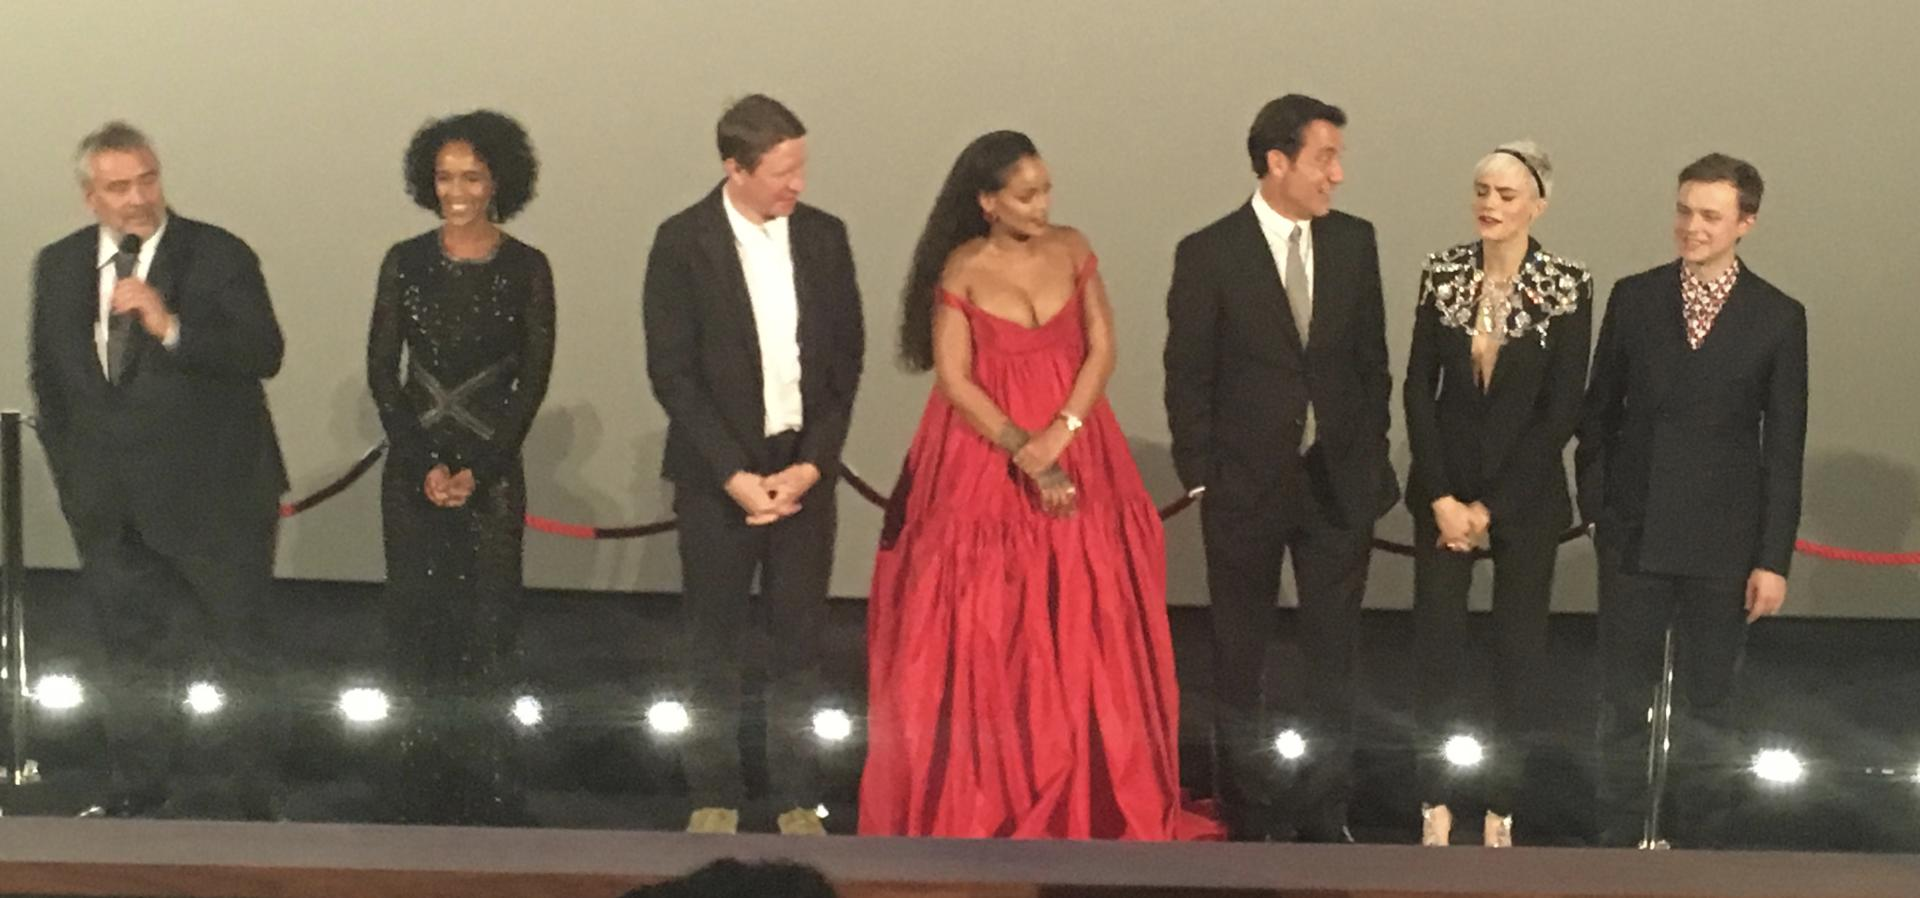 Line up of film stars before a premiere in a cinema.